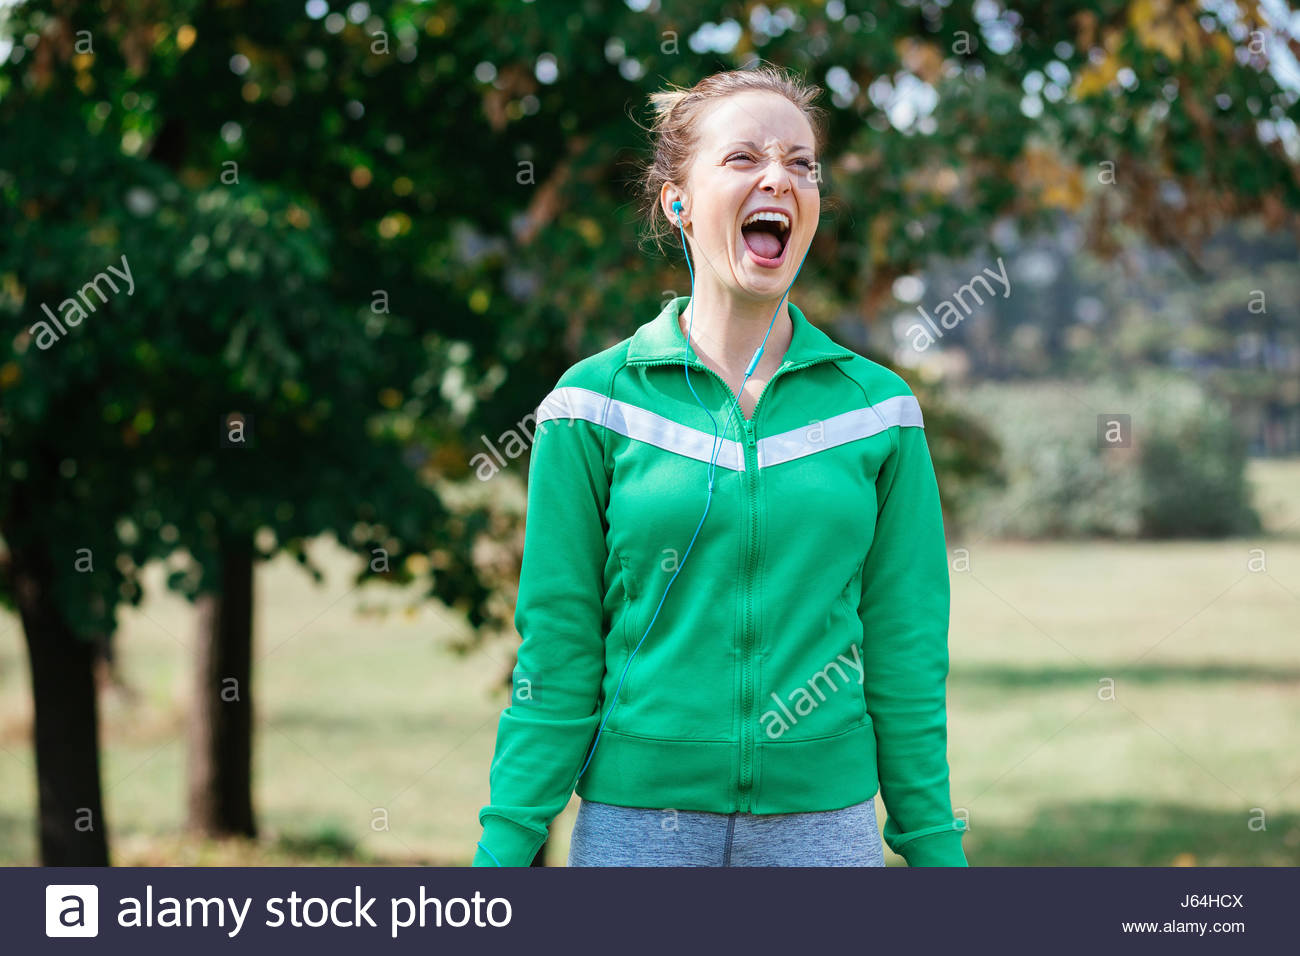 Women celebrate winning a race - Stock Image